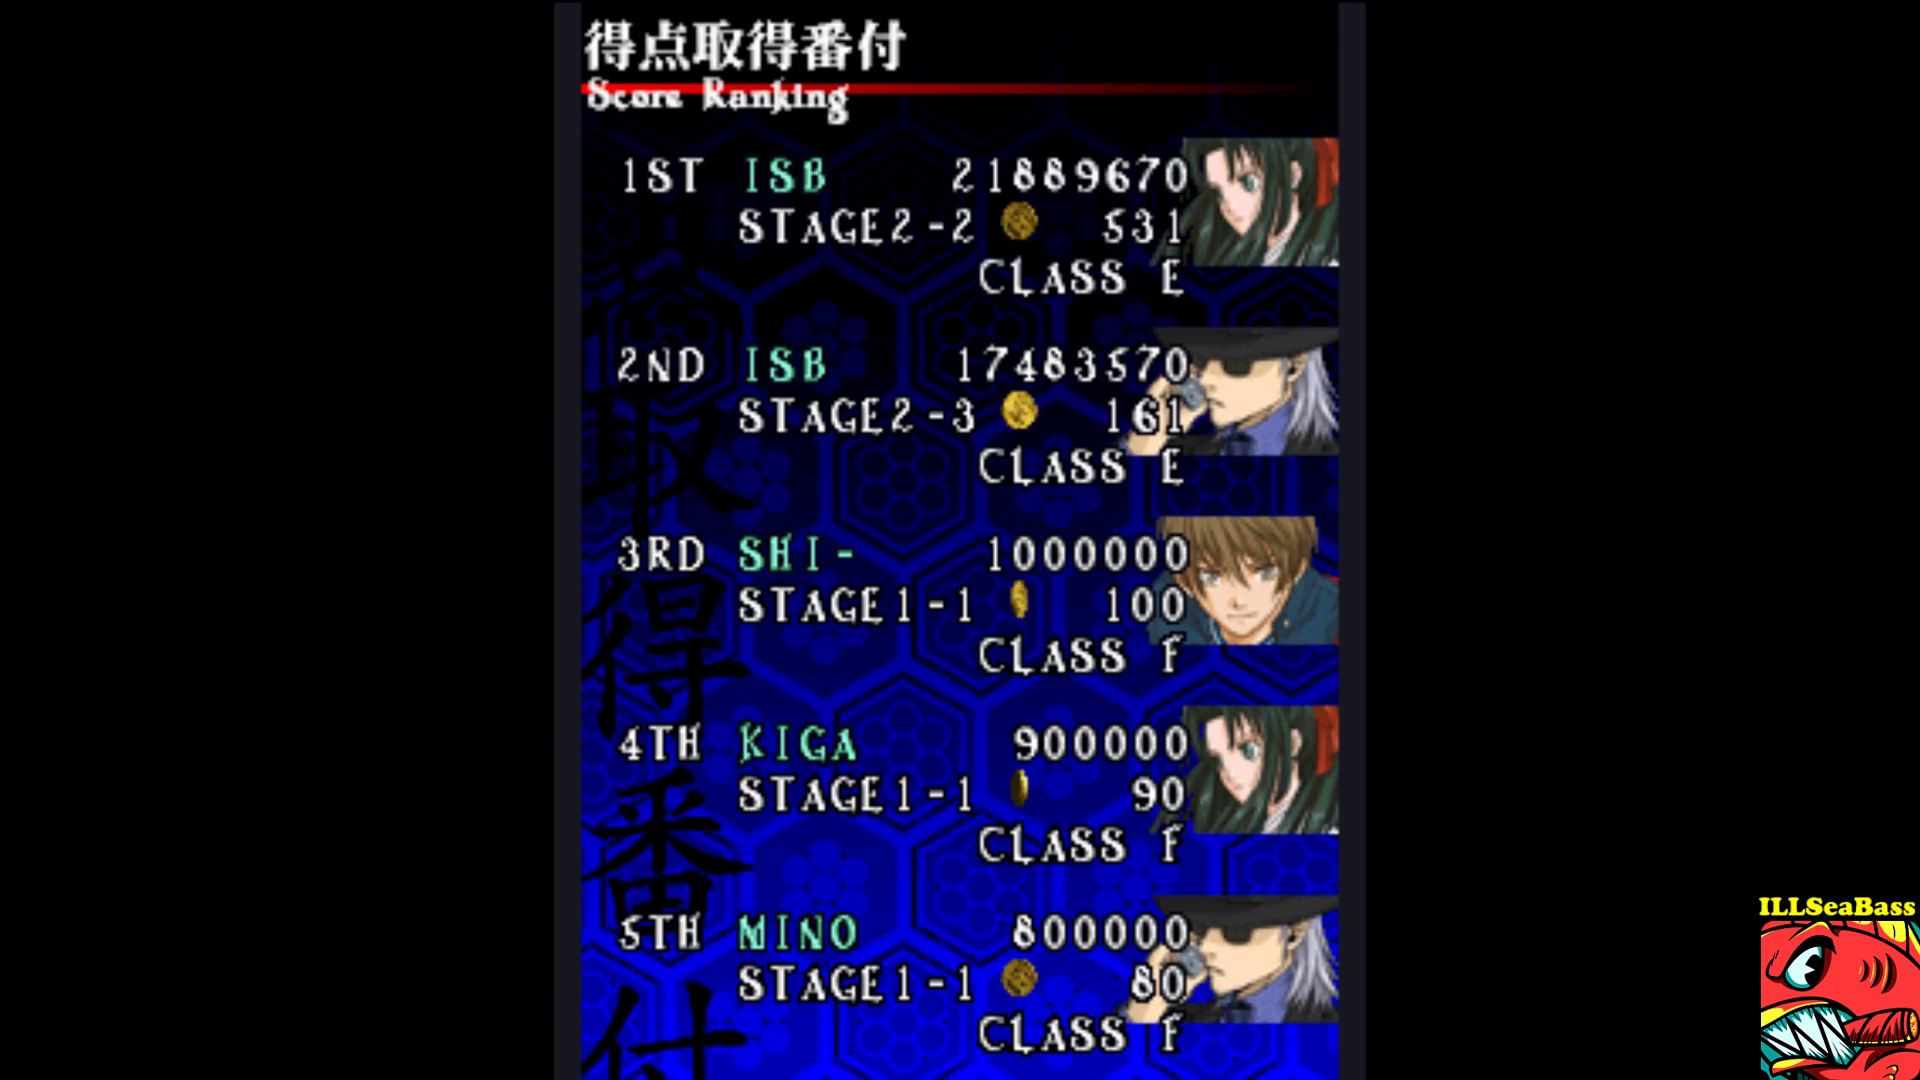 ILLSeaBass: Shikigami no Shiro [shikigam] (Arcade Emulated / M.A.M.E.) 21,889,670 points on 2017-09-14 21:34:41